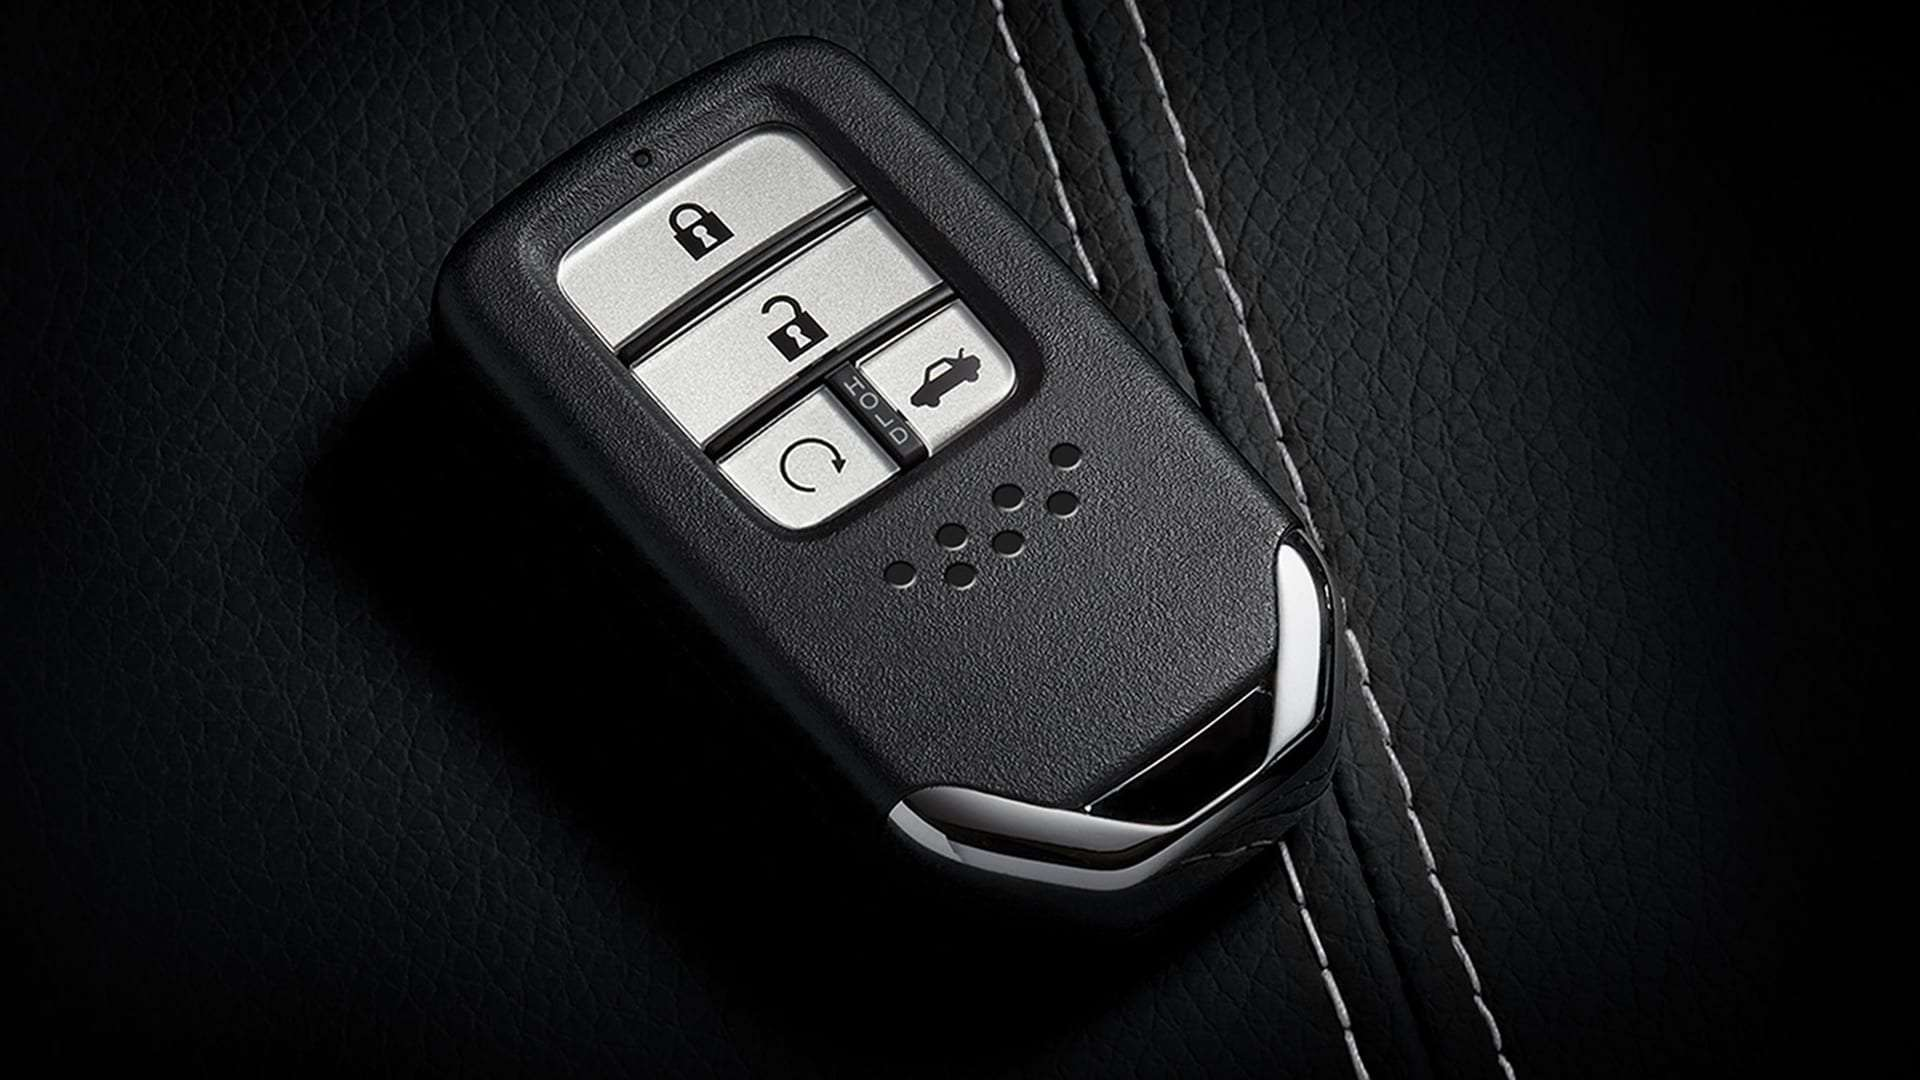 Civic - Smart Key – chave inteligente